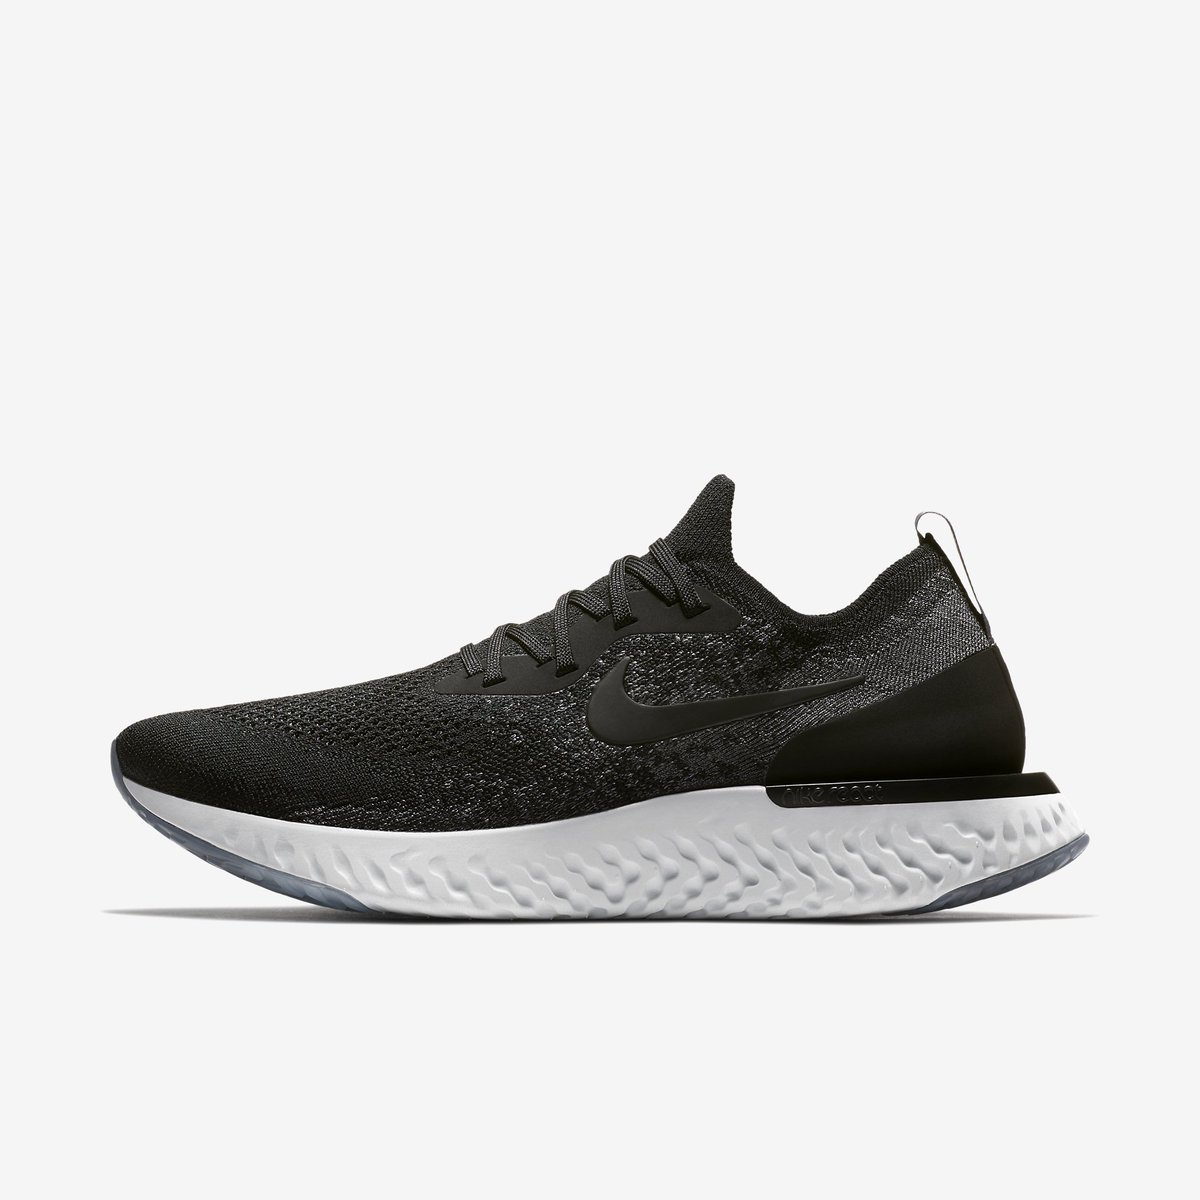 8aabc8a0c89a Nike Epic React Flyknit remaining colorways on Finish Line Dark Grey -   https   go.j23app.com 6ka Grey -  https   go.j23app.com 6kc Navy ...